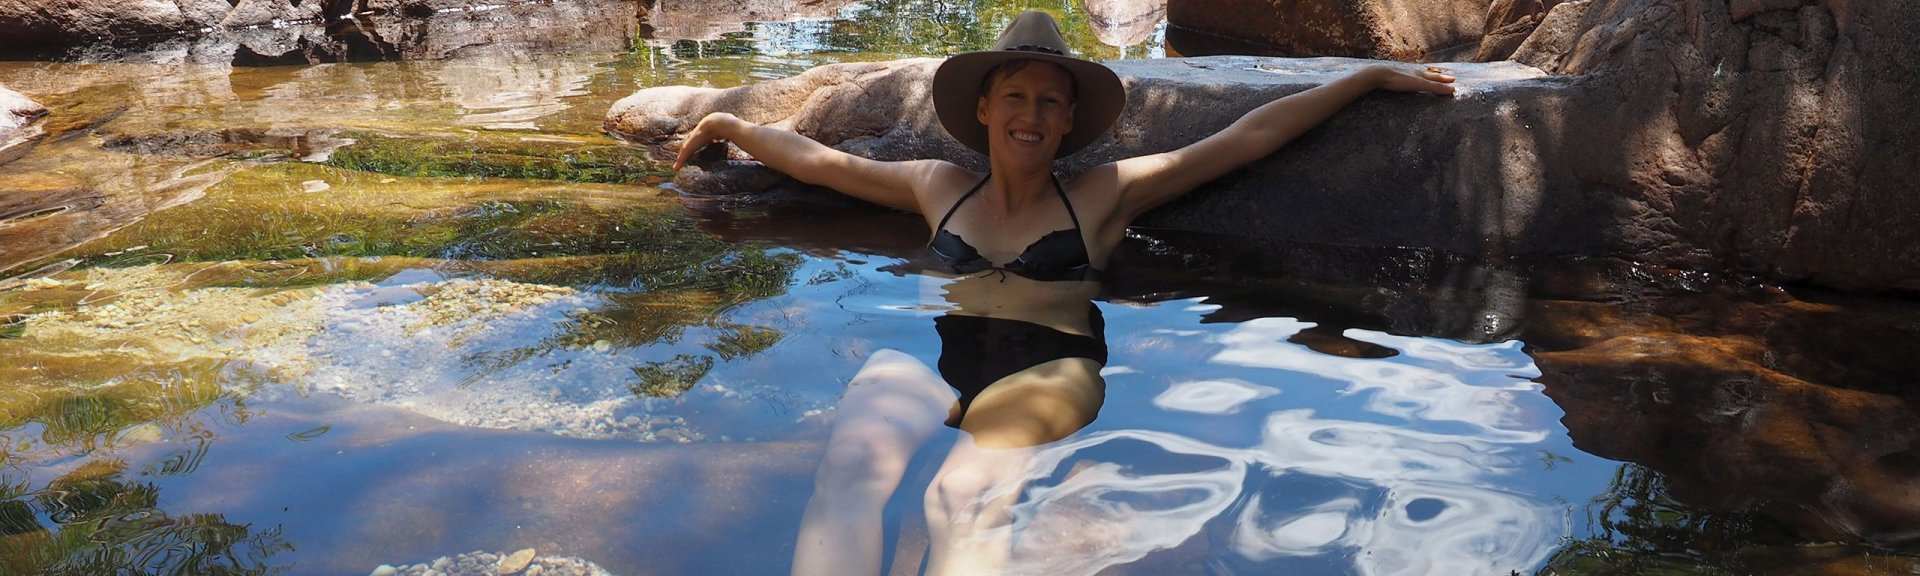 Visitor relaxing in the water at Kakadu National Park. Image credit Charter North 4WD.